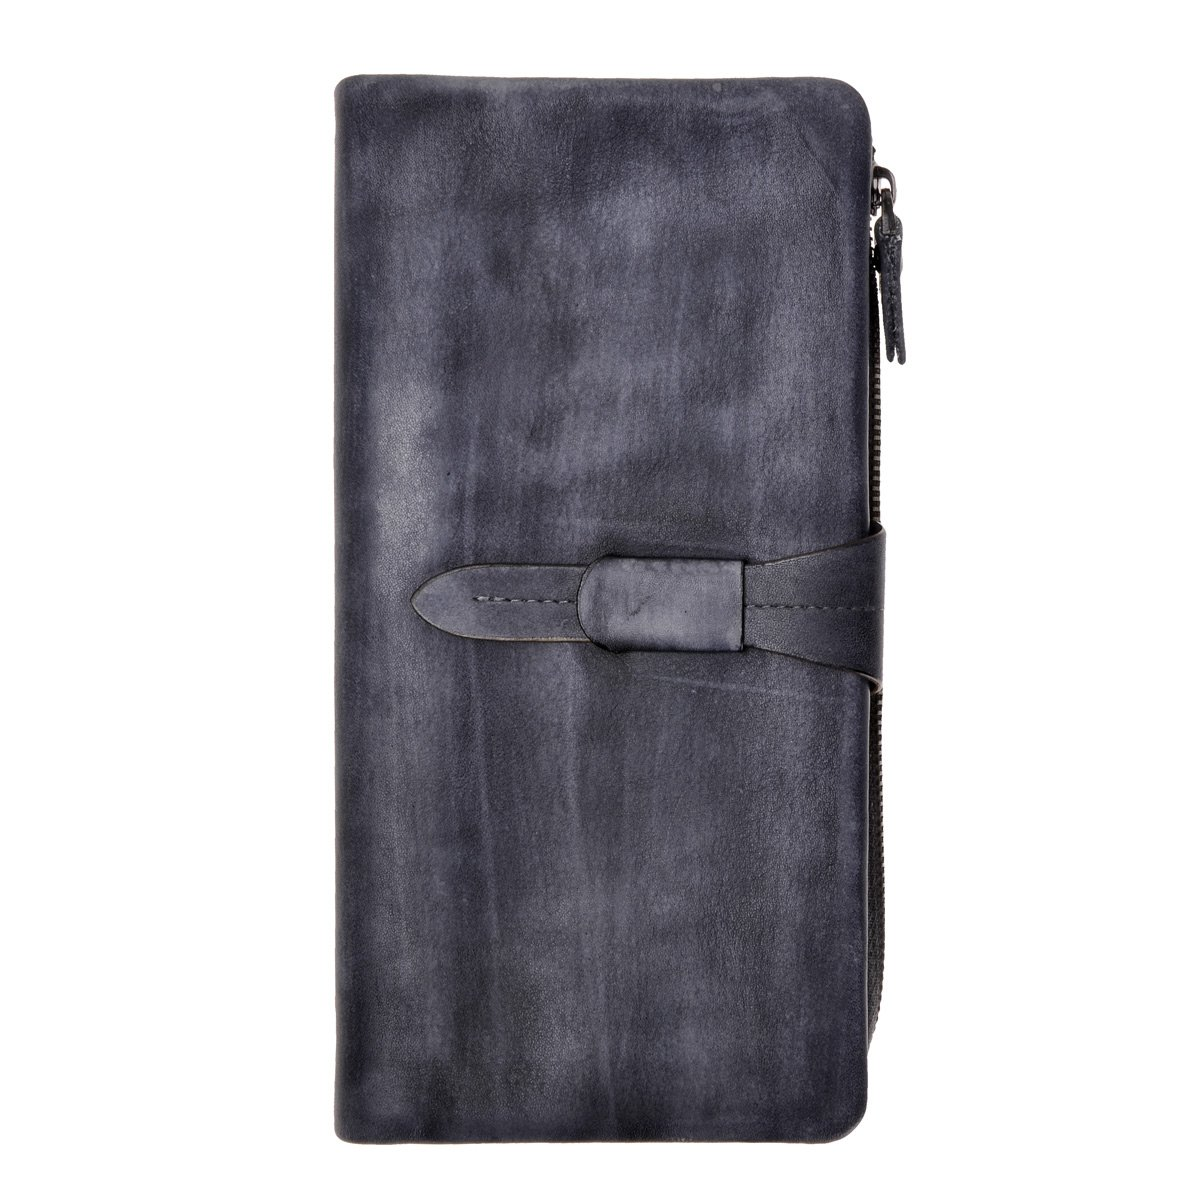 ZLYC Women's Handmade Soft Leather Long Clutch Card Holder Wallet Fits iPhone 8 X, Gray